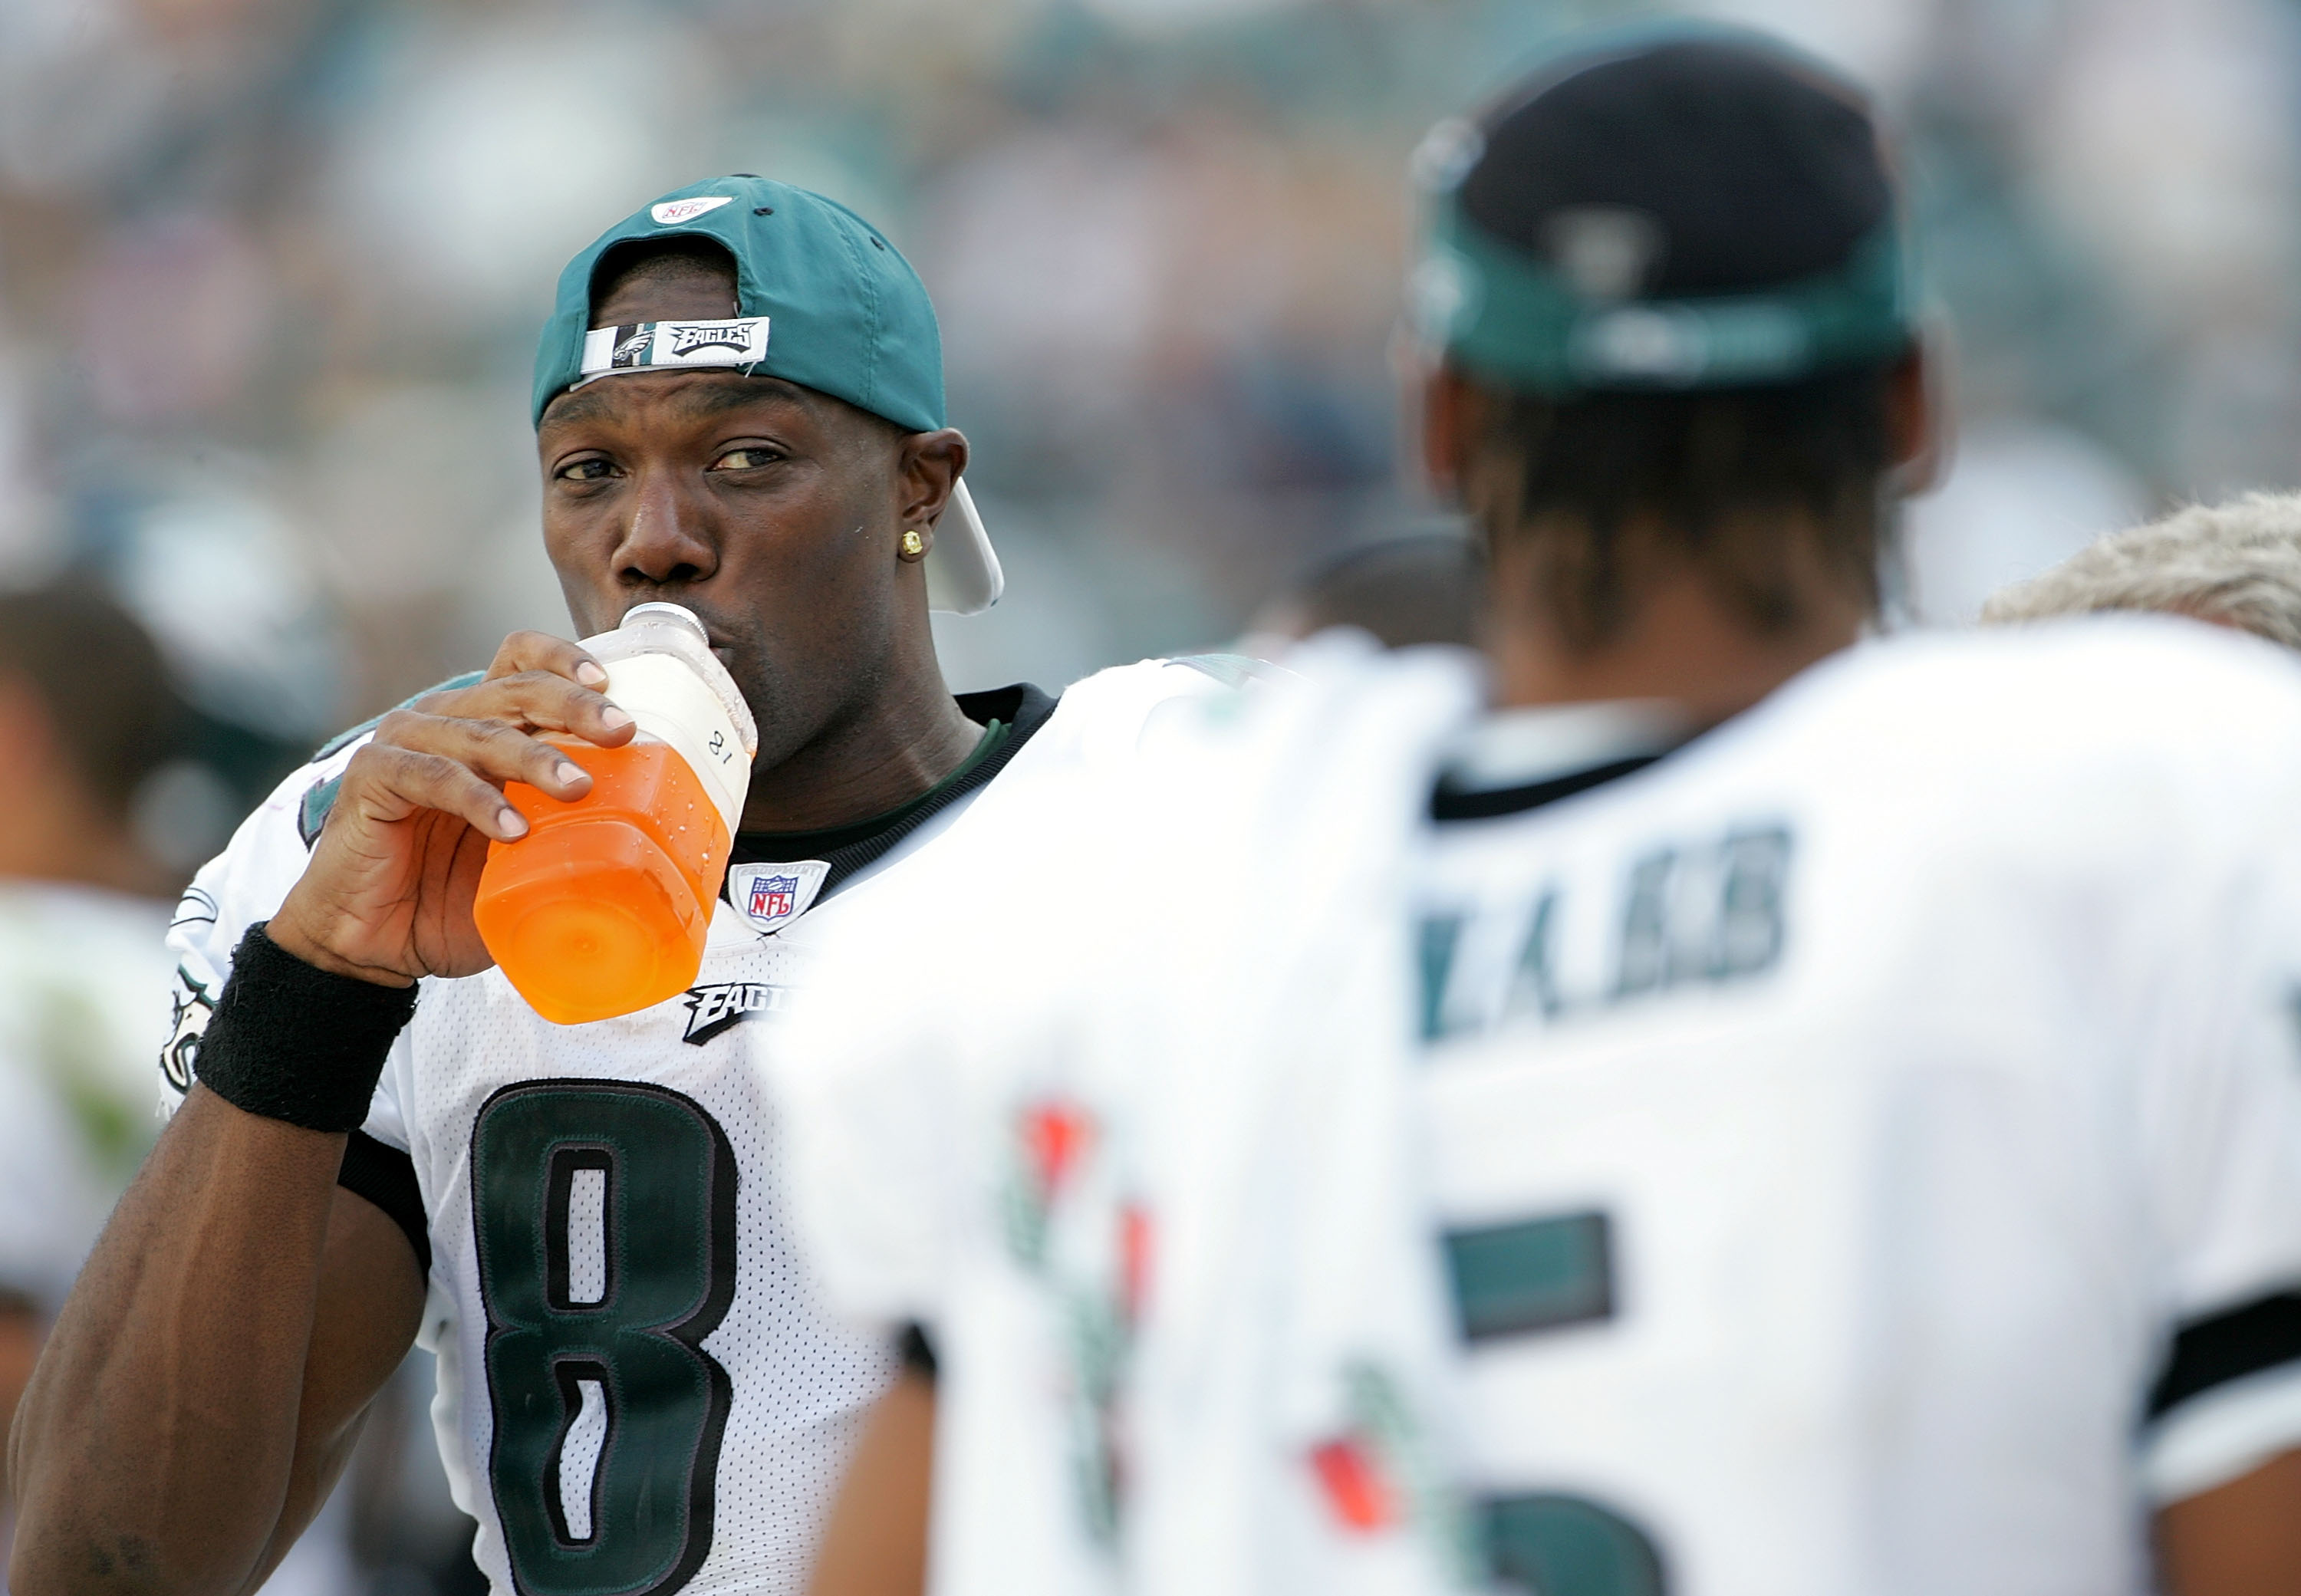 PHILADELPHIA - SEPTEMBER 18:  Receiver Terrell Owens #81 speaks with quarterback Donovan McNabb #5 of the Philadelphia Eagles while on the sidelines during the second half of the game against the San Francisco 49ers on September 18, 2005 at Lincoln Financ